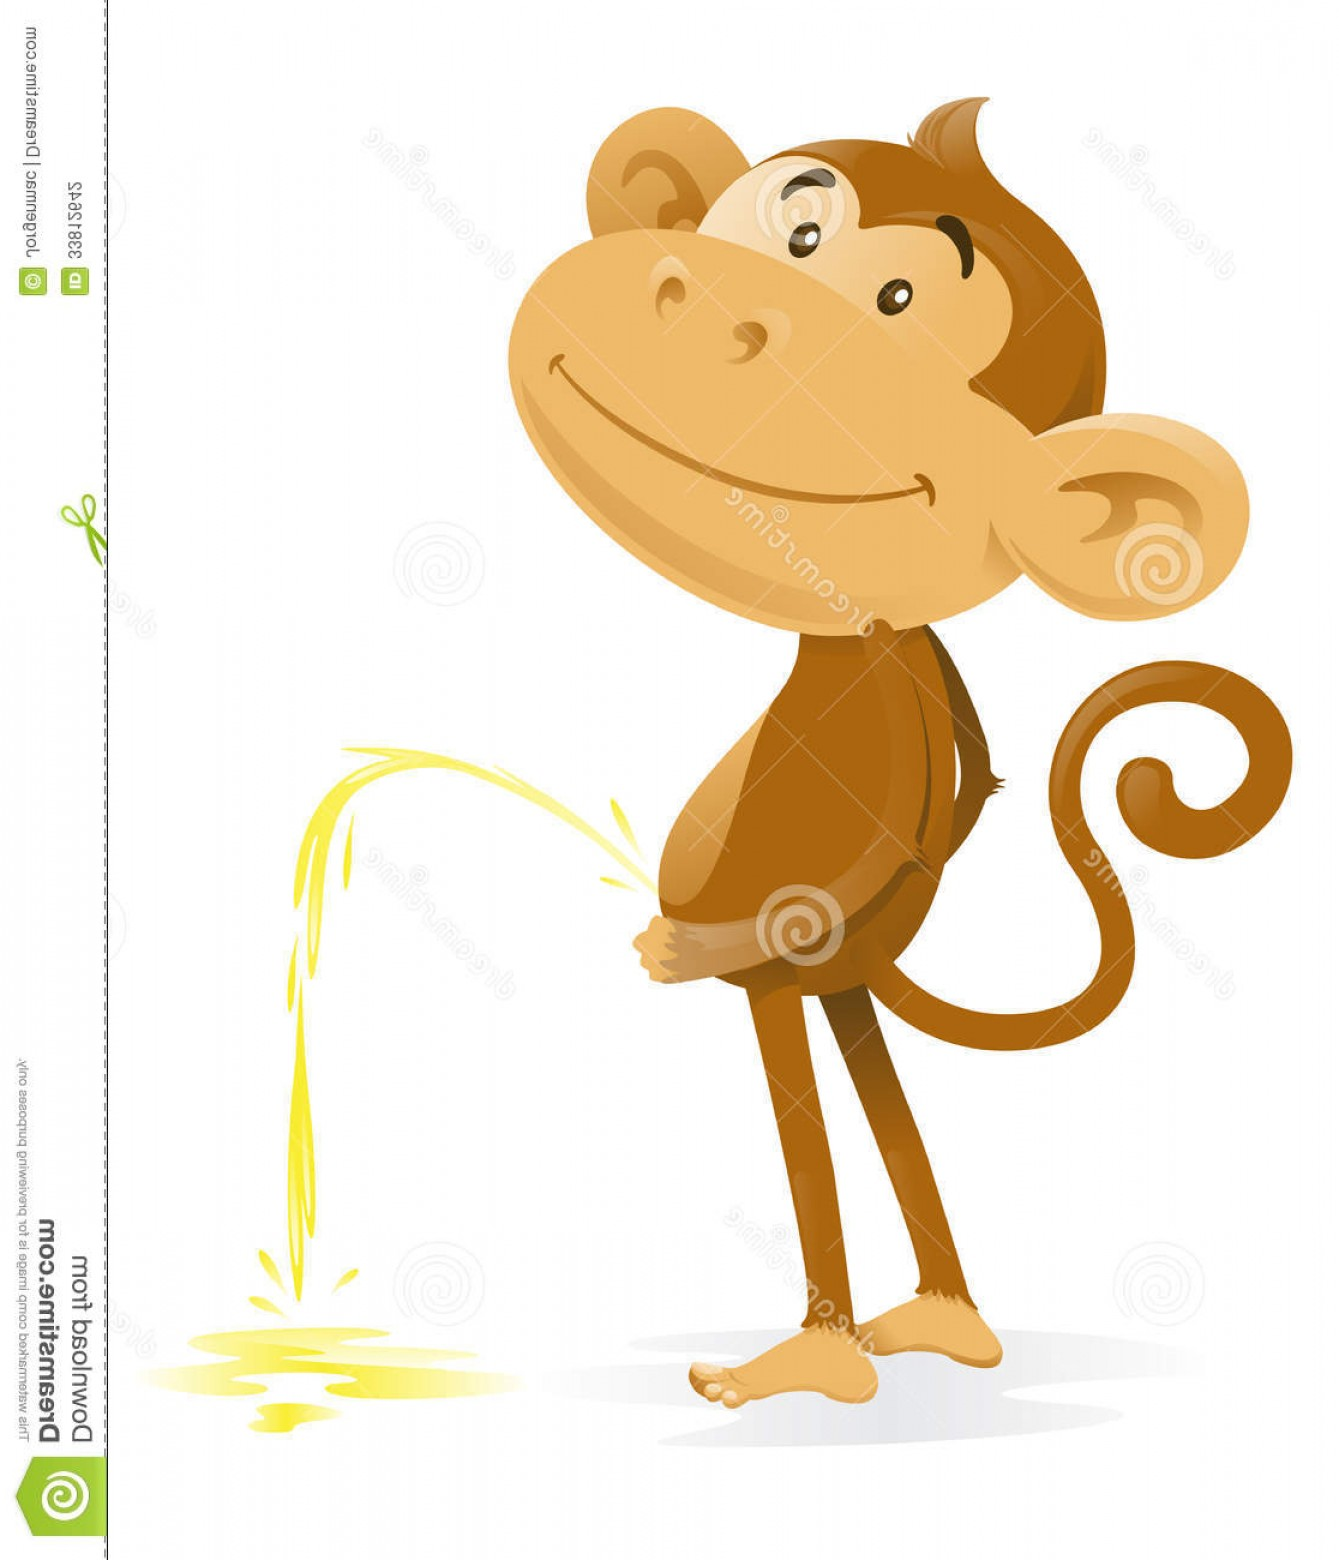 Pee On Clip Art Vector Graphic: Stock Photography Cheeky Monkey Takes Pee Illustration Very Who Has Been Caught Short Has Had To Have Wee Image